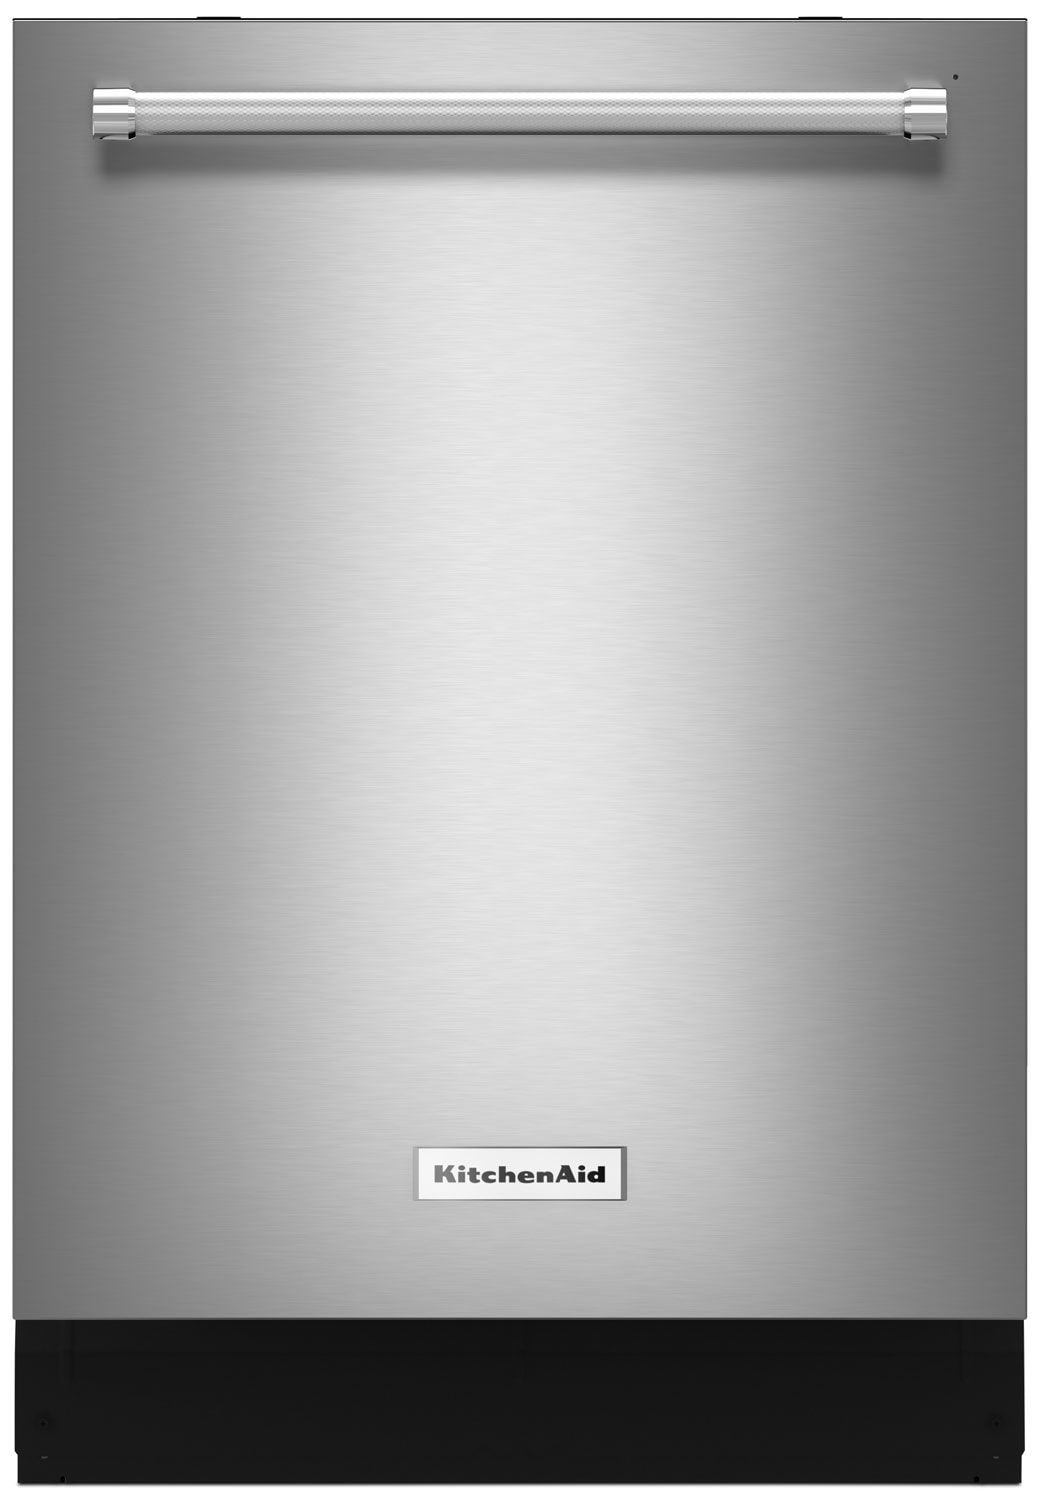 "KitchenAid 24"" Dishwasher with ProScrub® System - Stainless Steel"